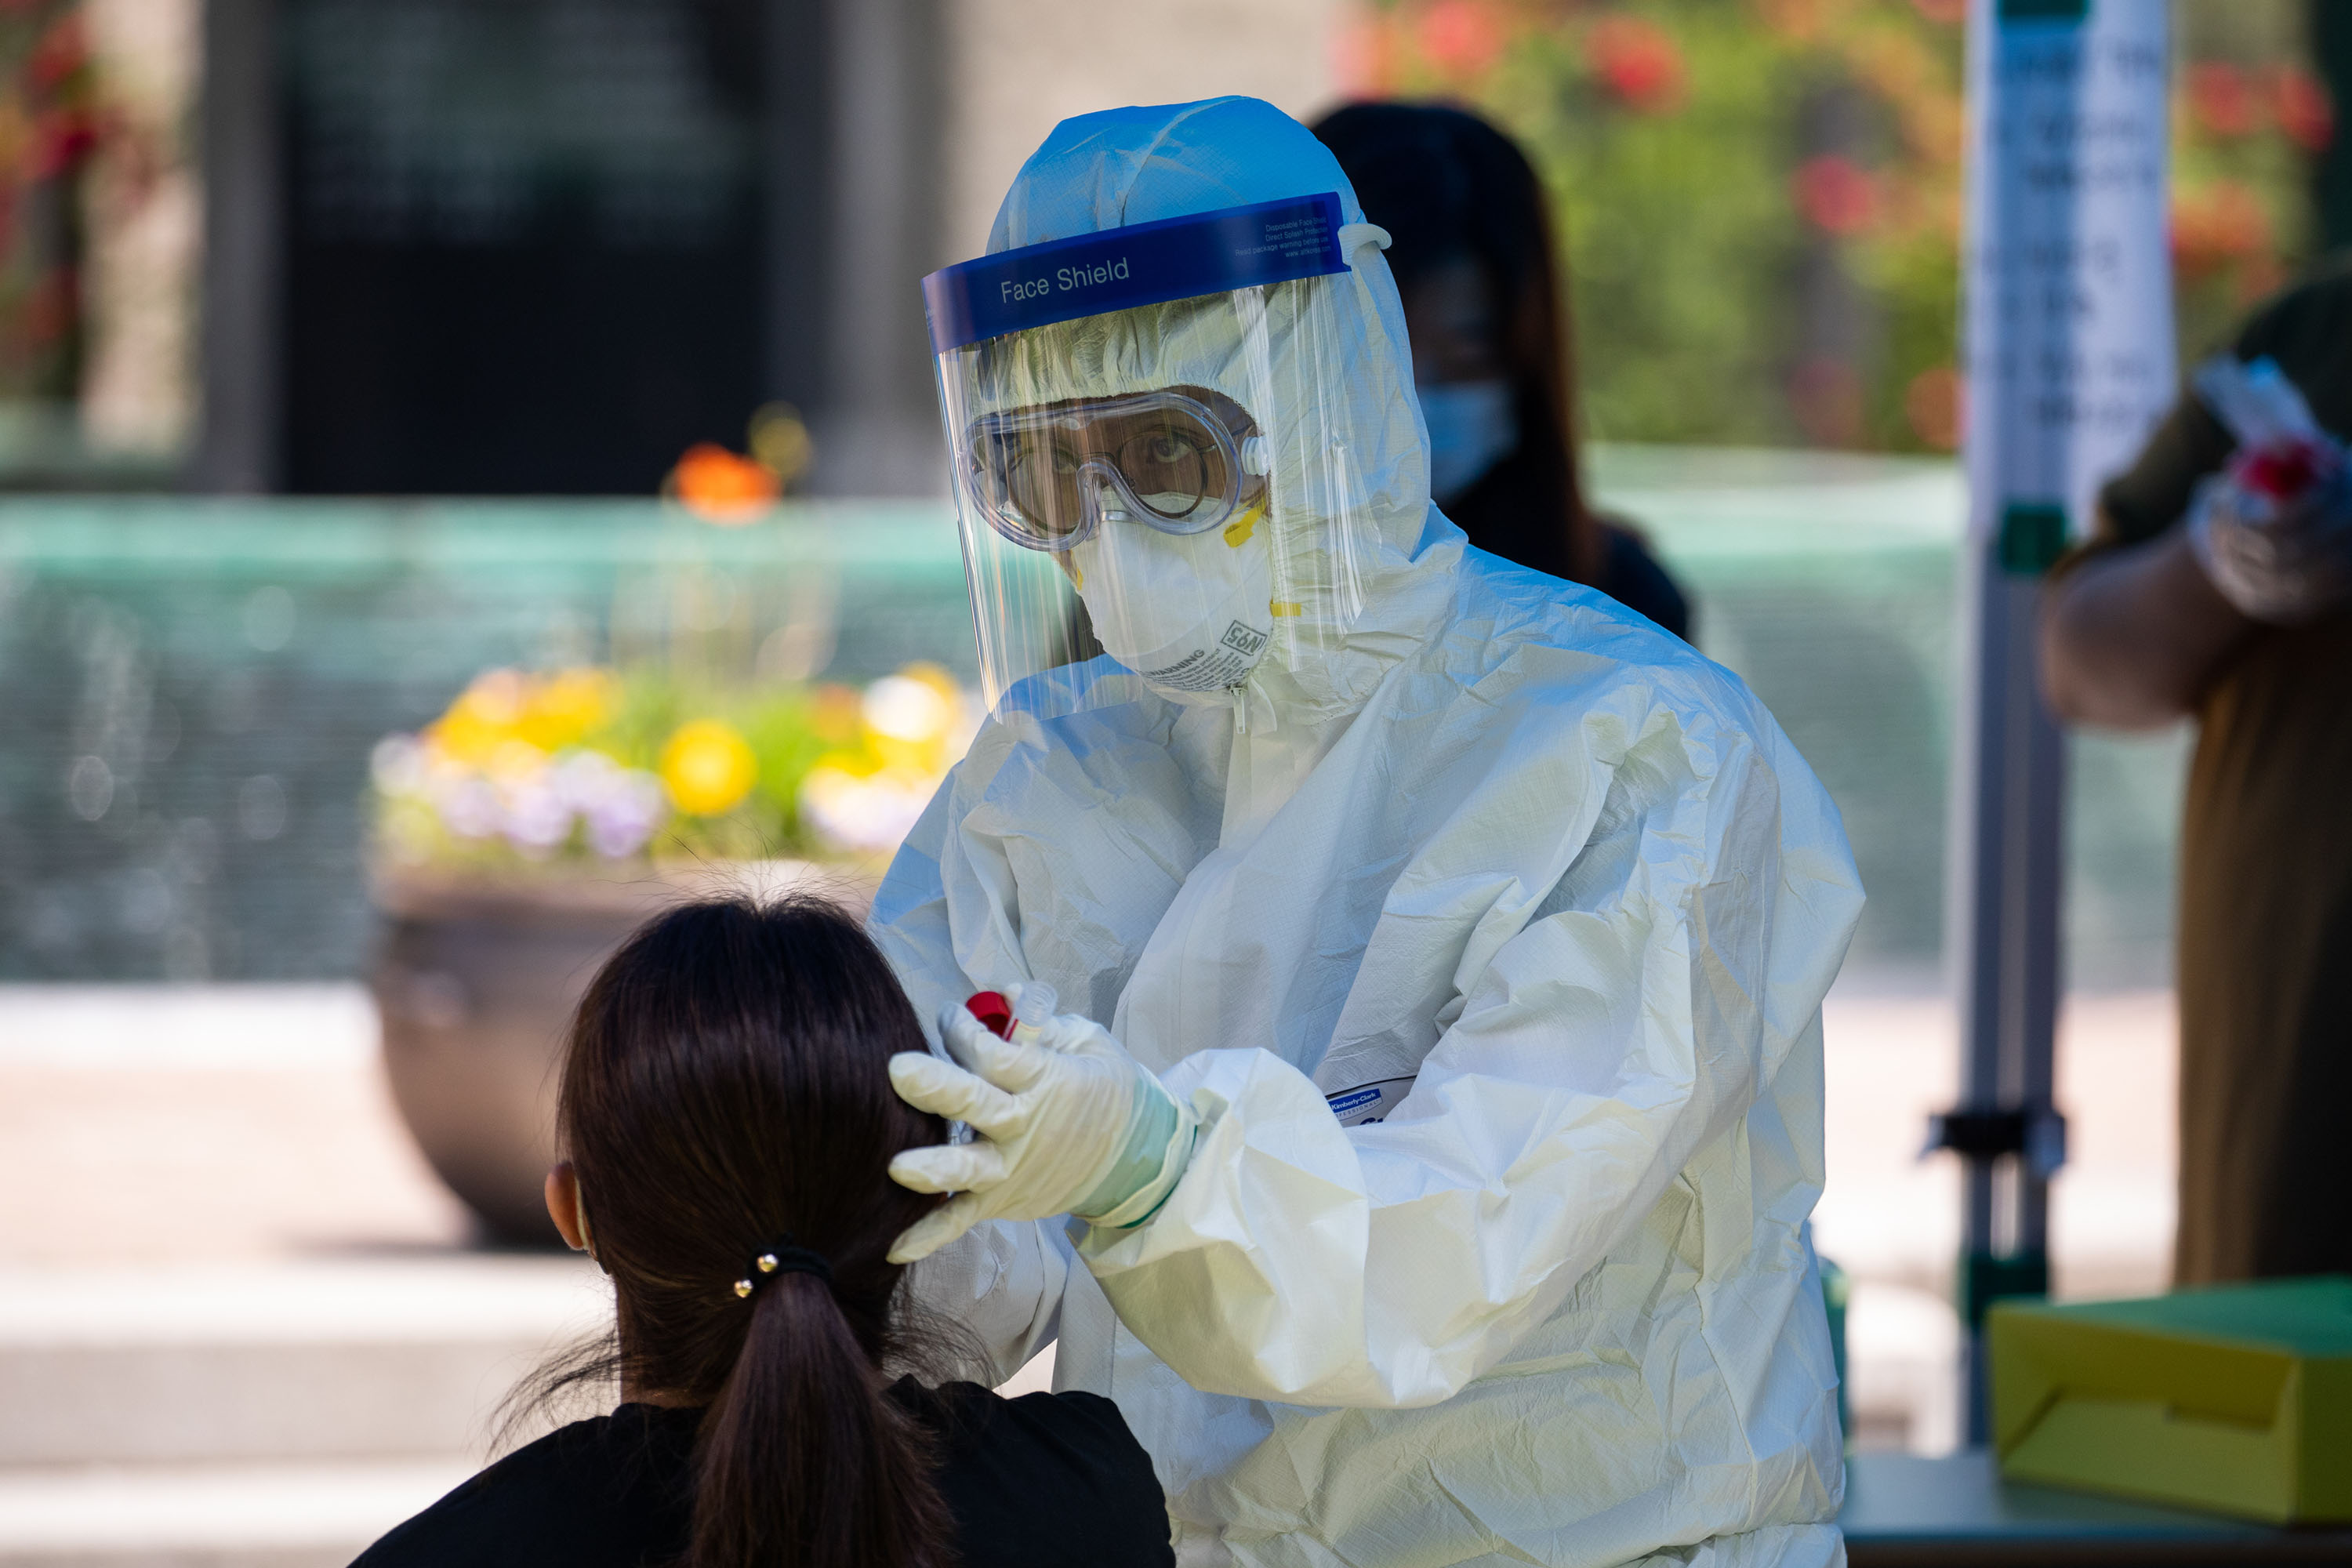 A medical worker collects a sample at a coronavirus testing station in Seoul, South Korea, on May 29.